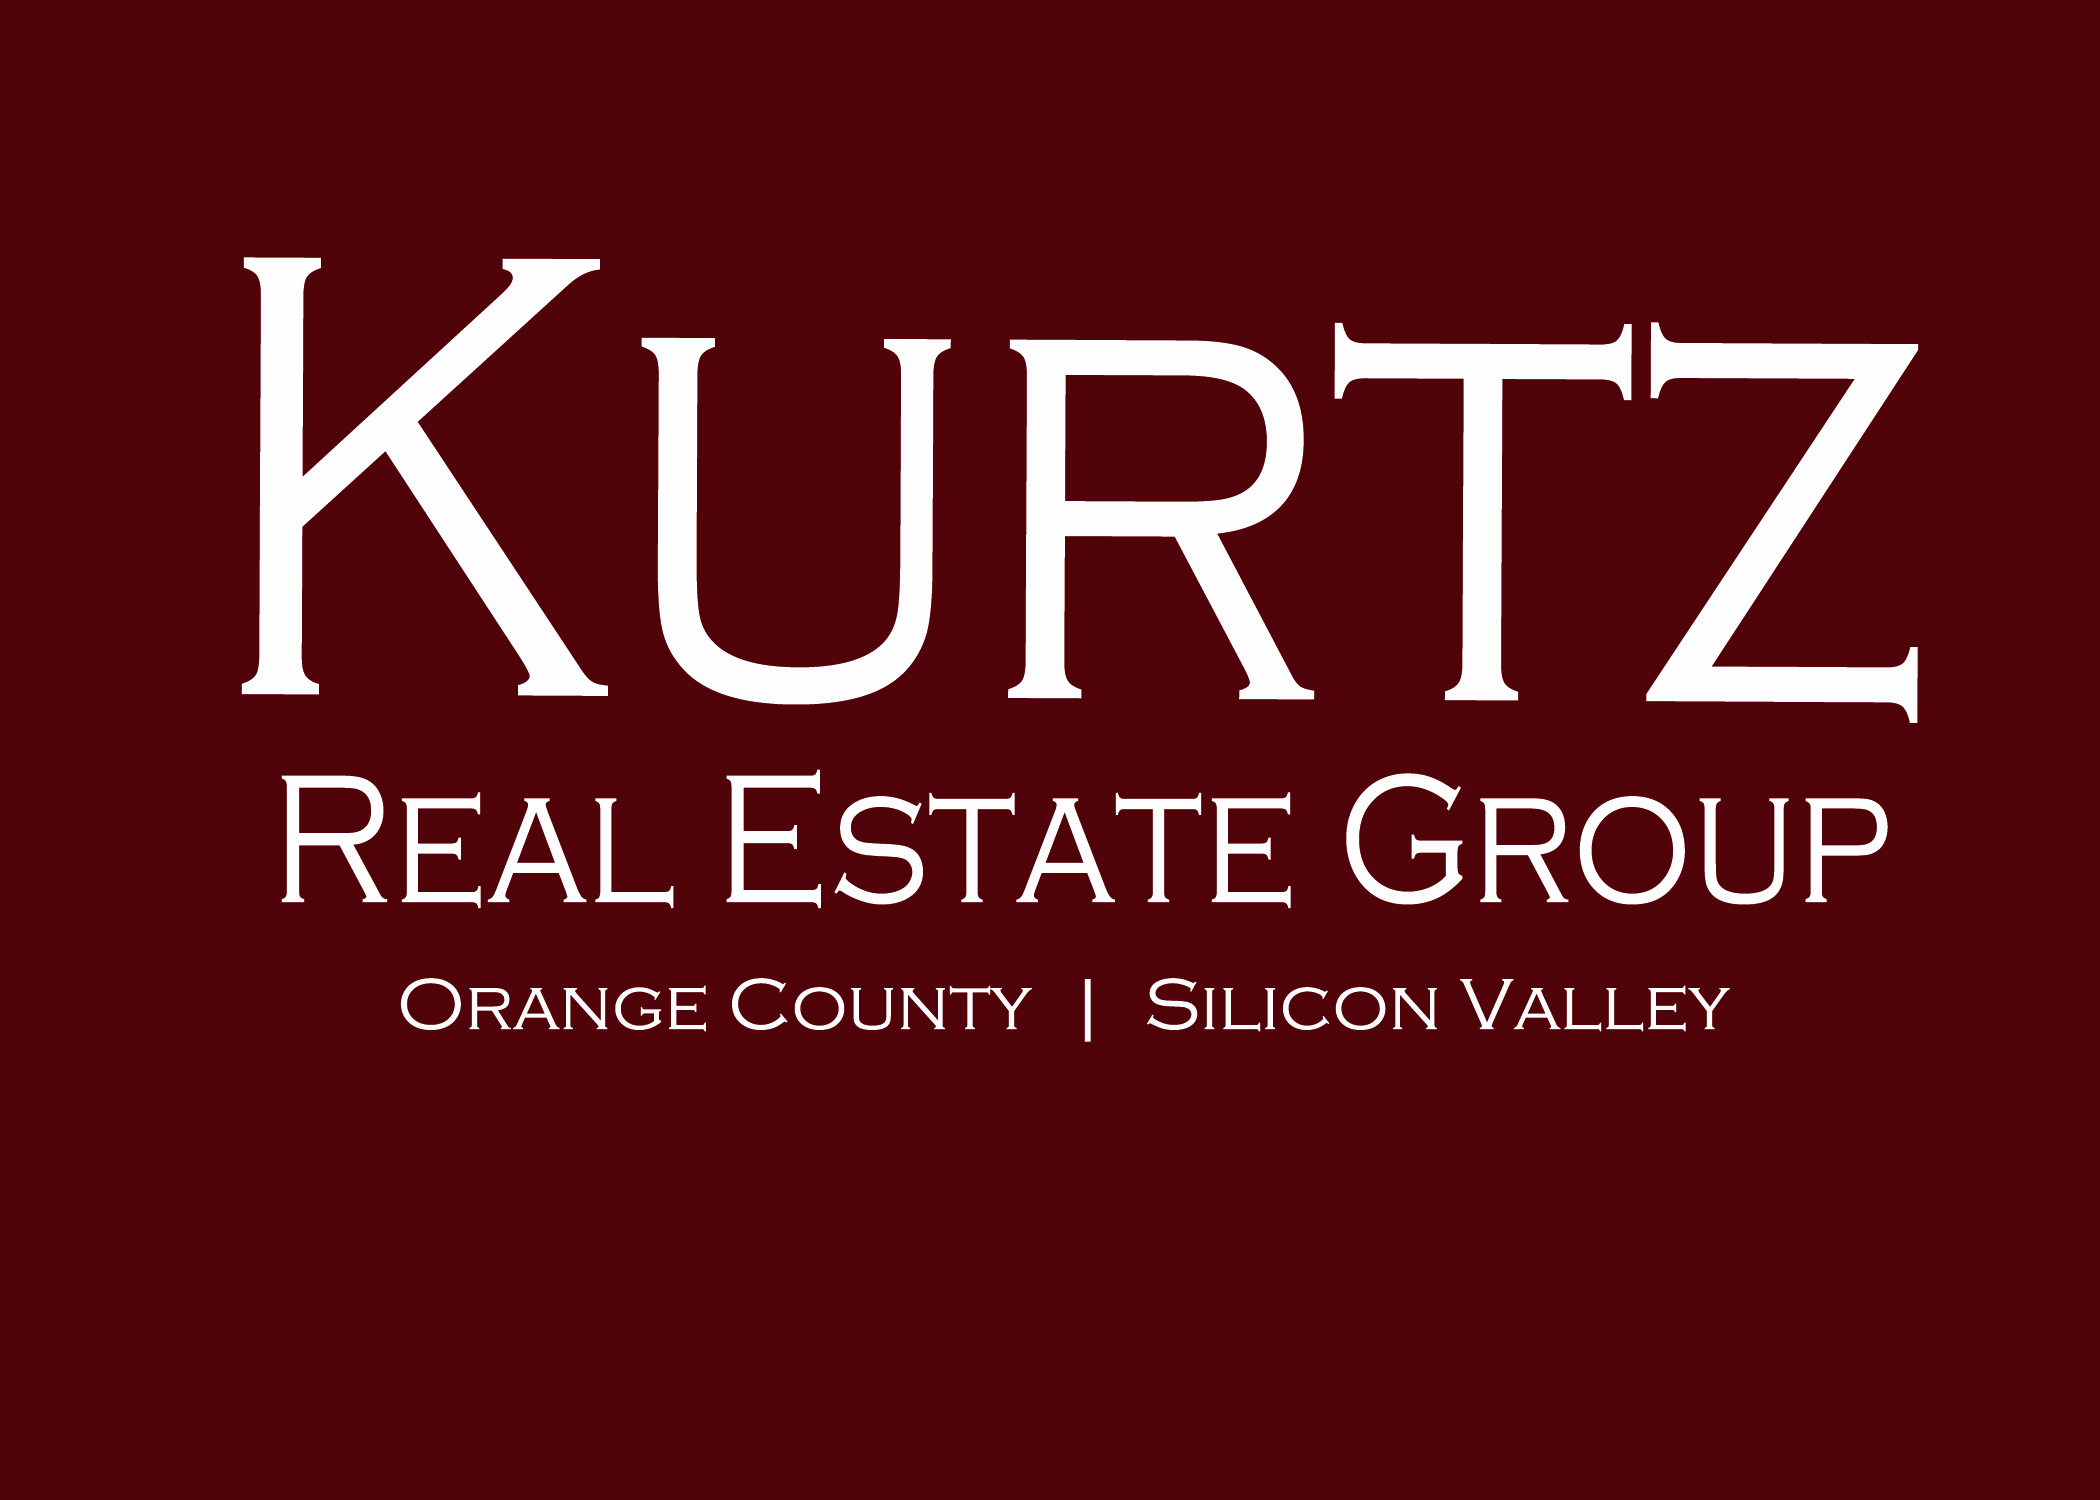 Kurtz Real Estate Group